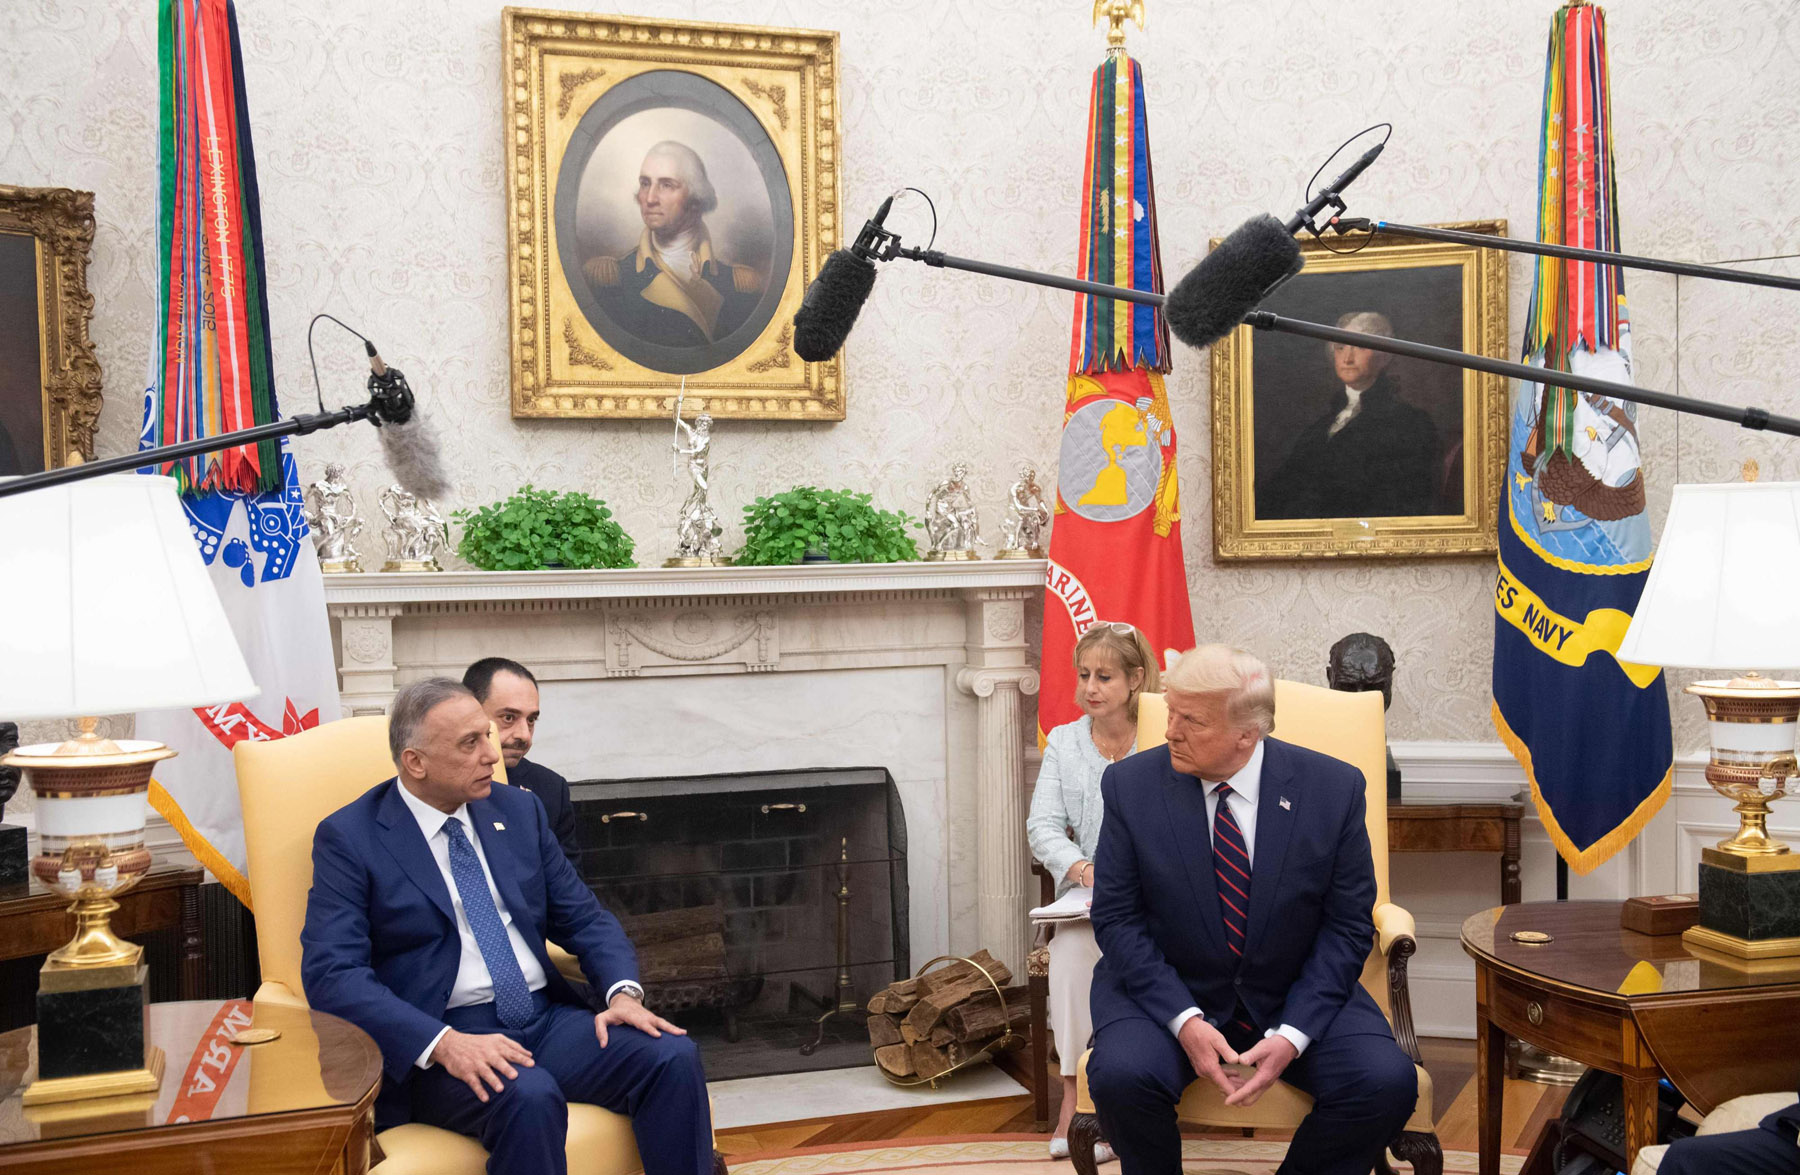 US President Donald Trump meets with Iraqi Prime Minister Mustafa al-Kadhemi in the Oval Office of the White House in Washington, August 20. AFP